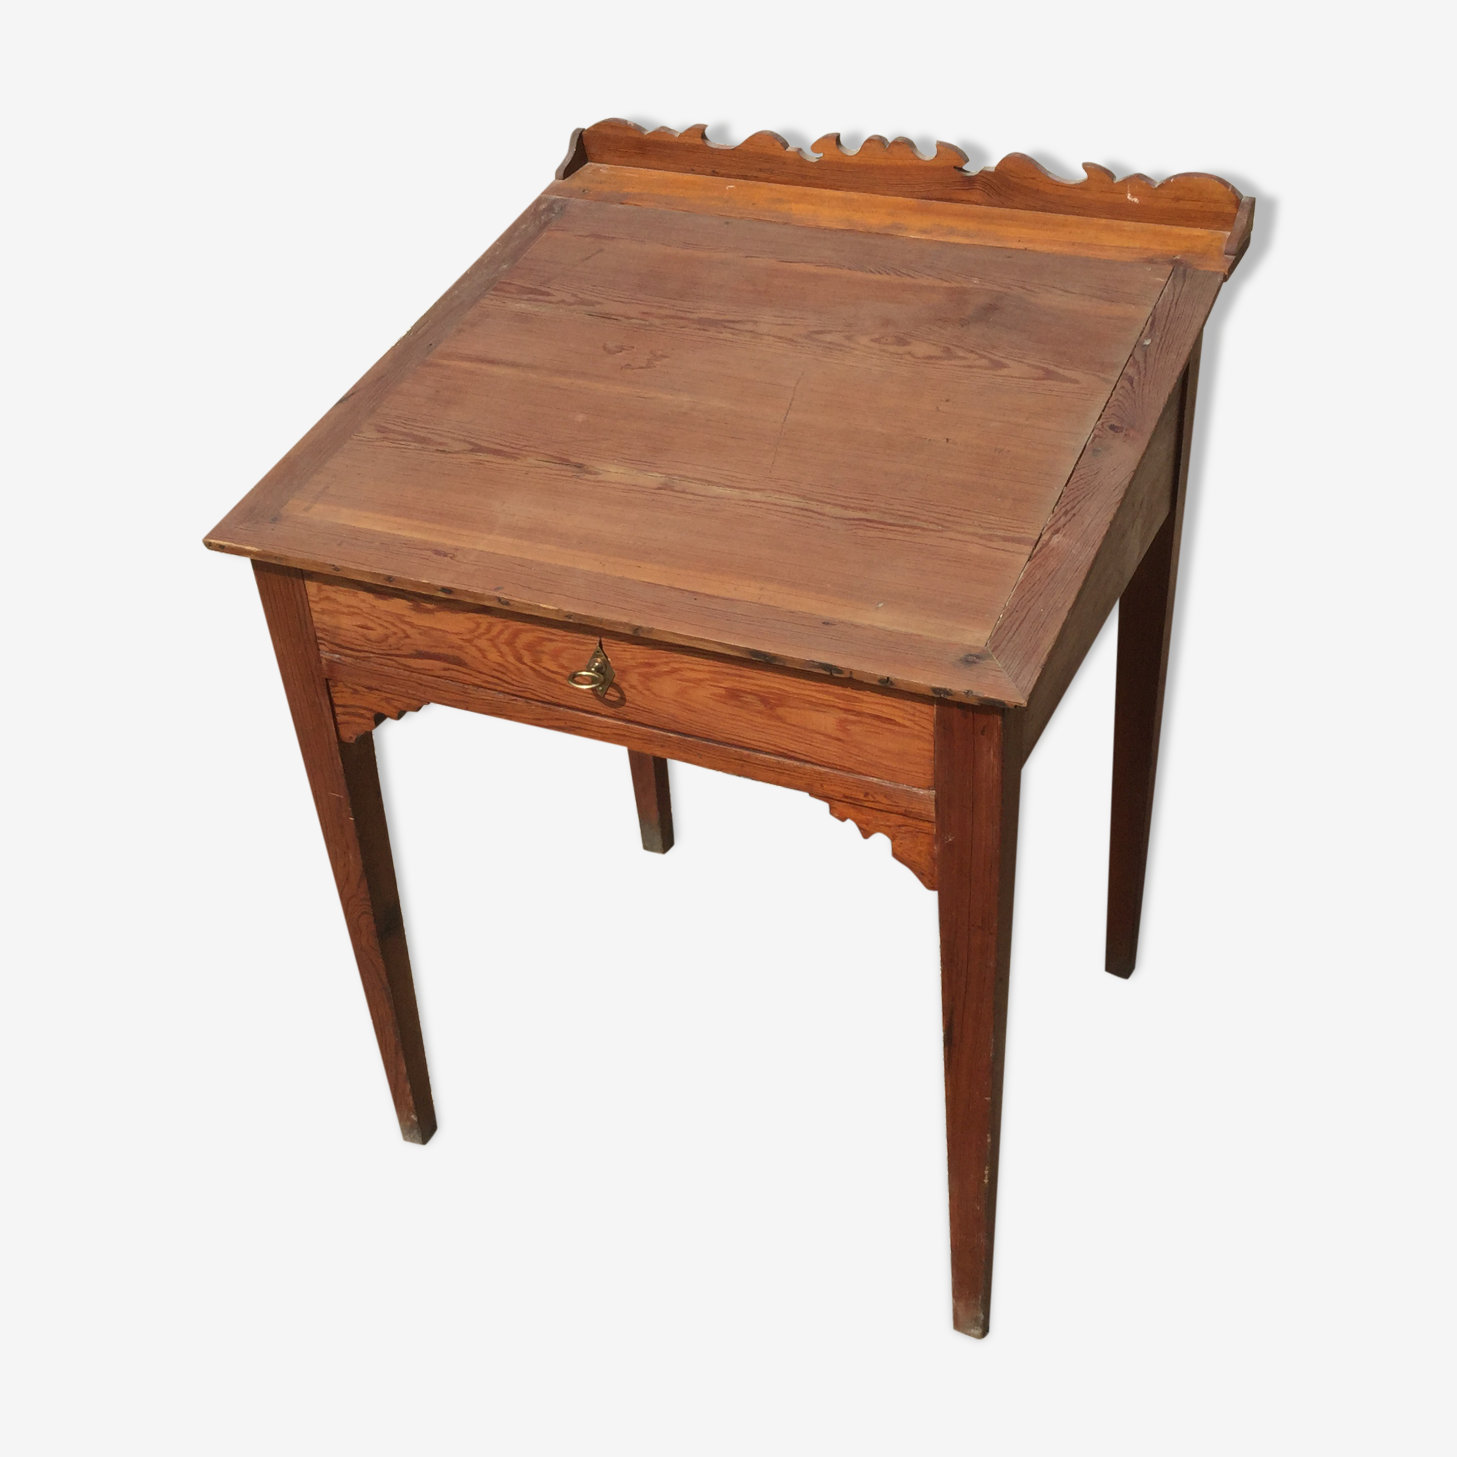 Writing desk in pitch pine